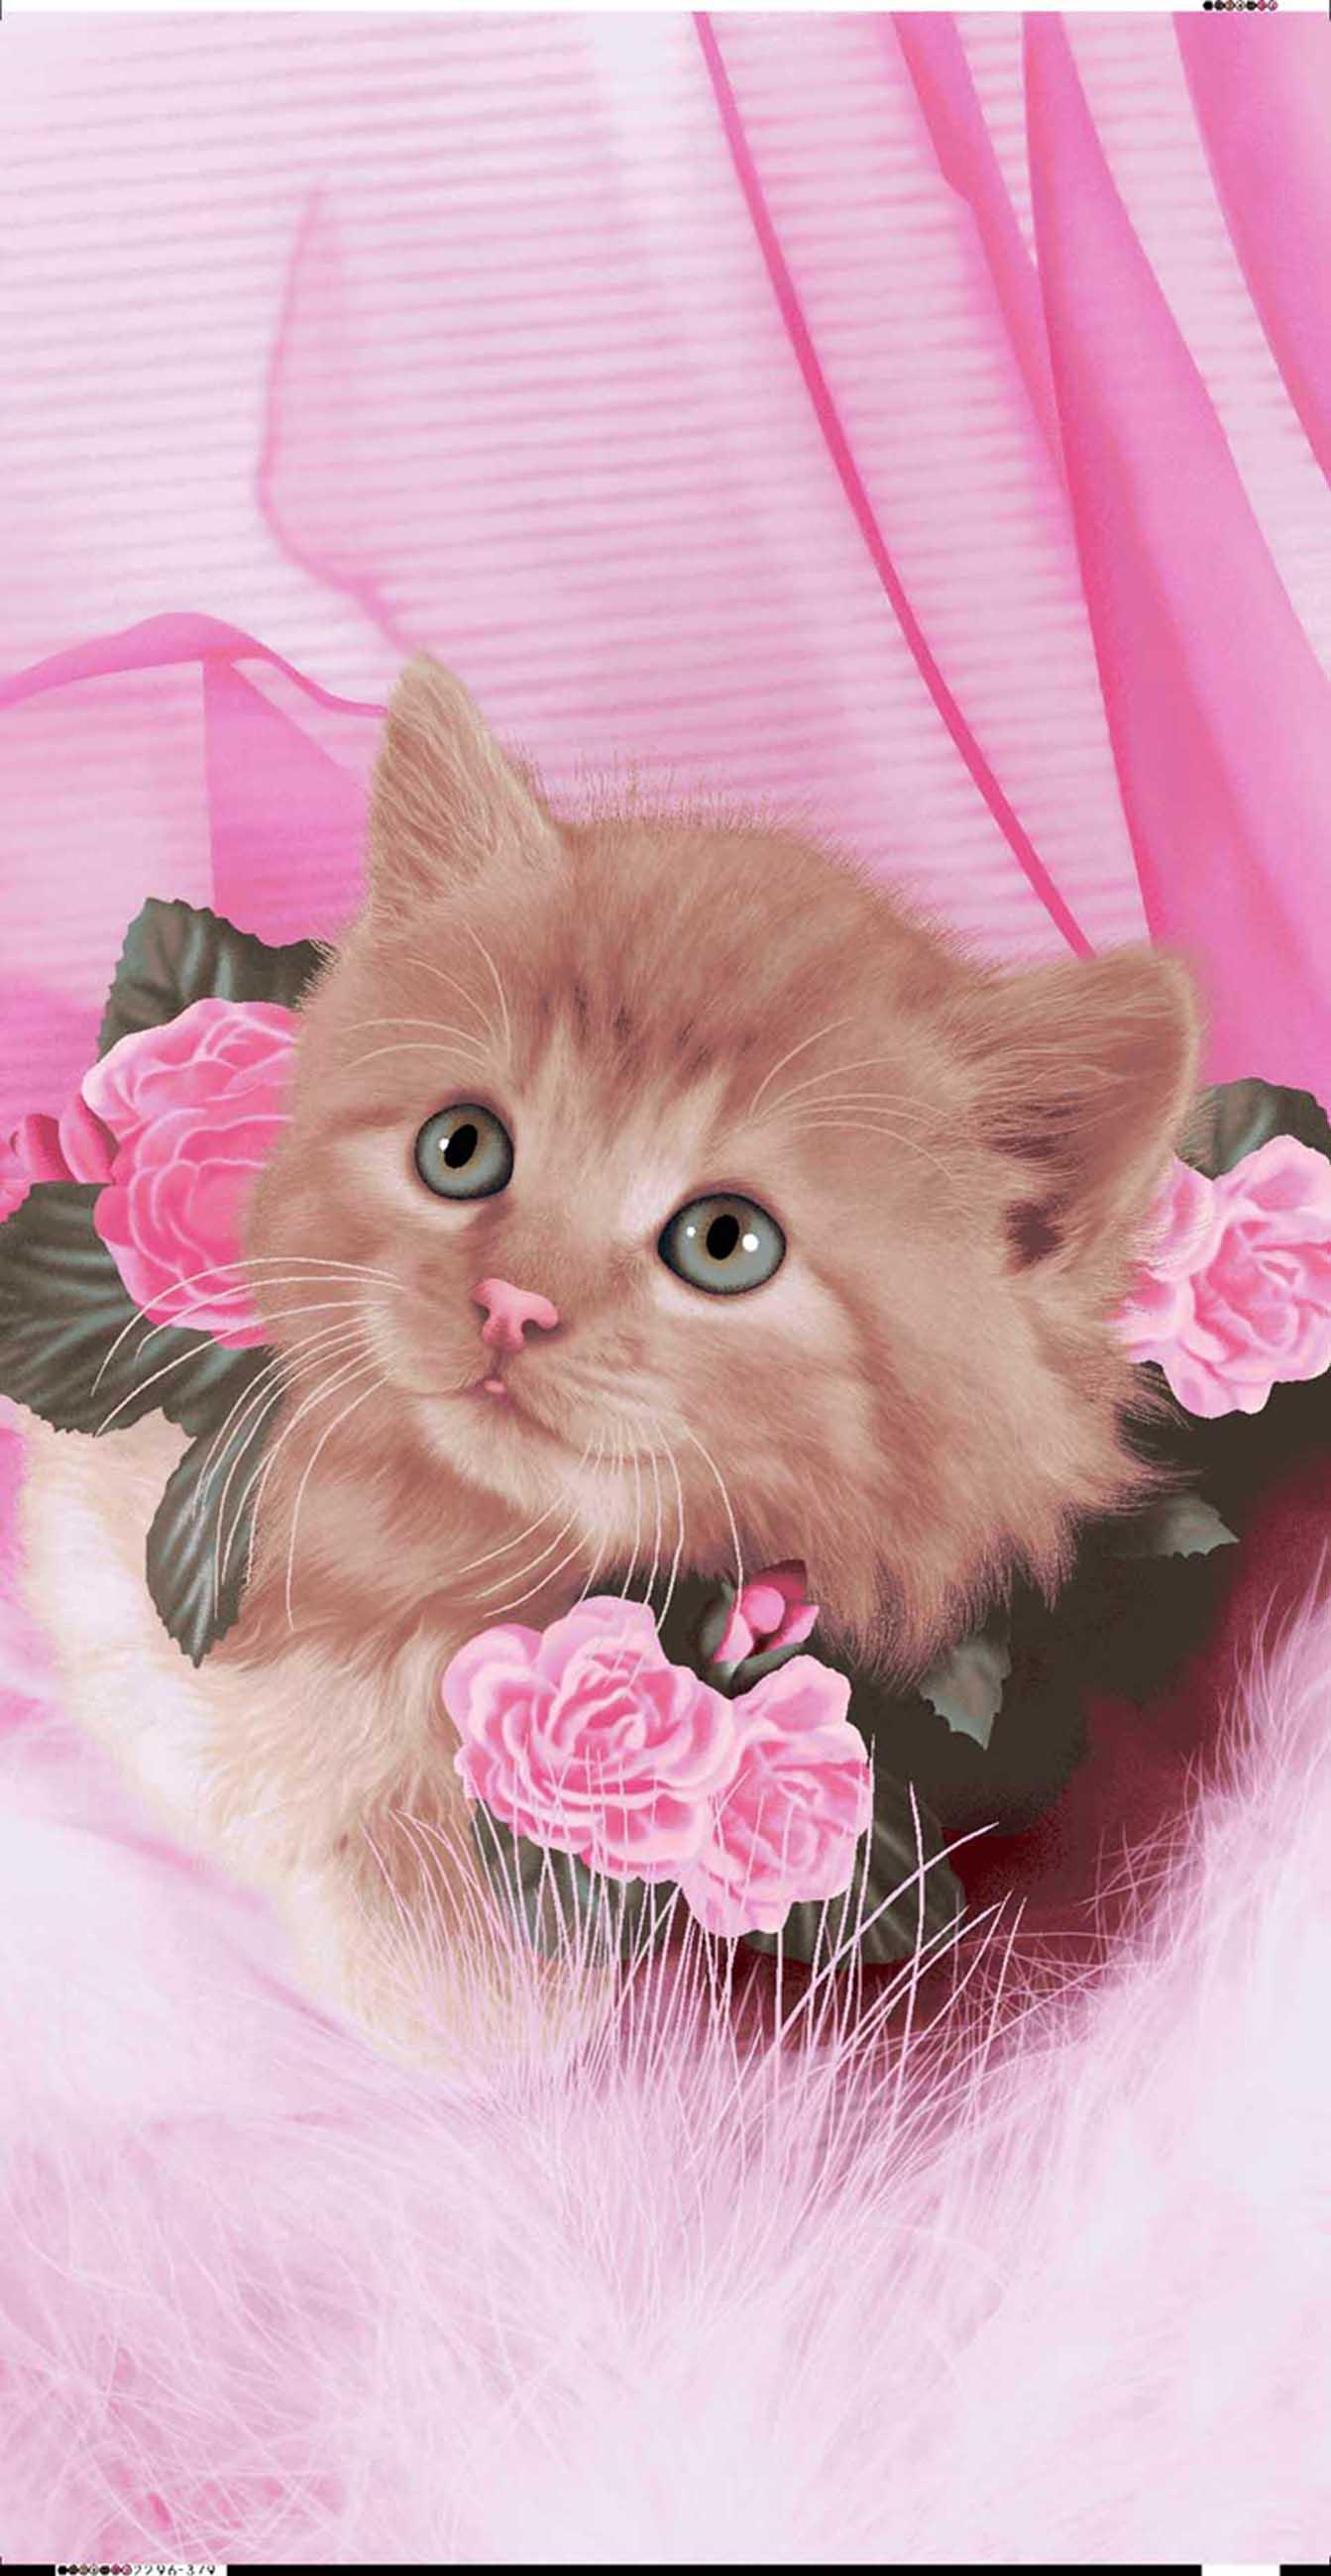 KITTY CUTE ROSE CAT 2296